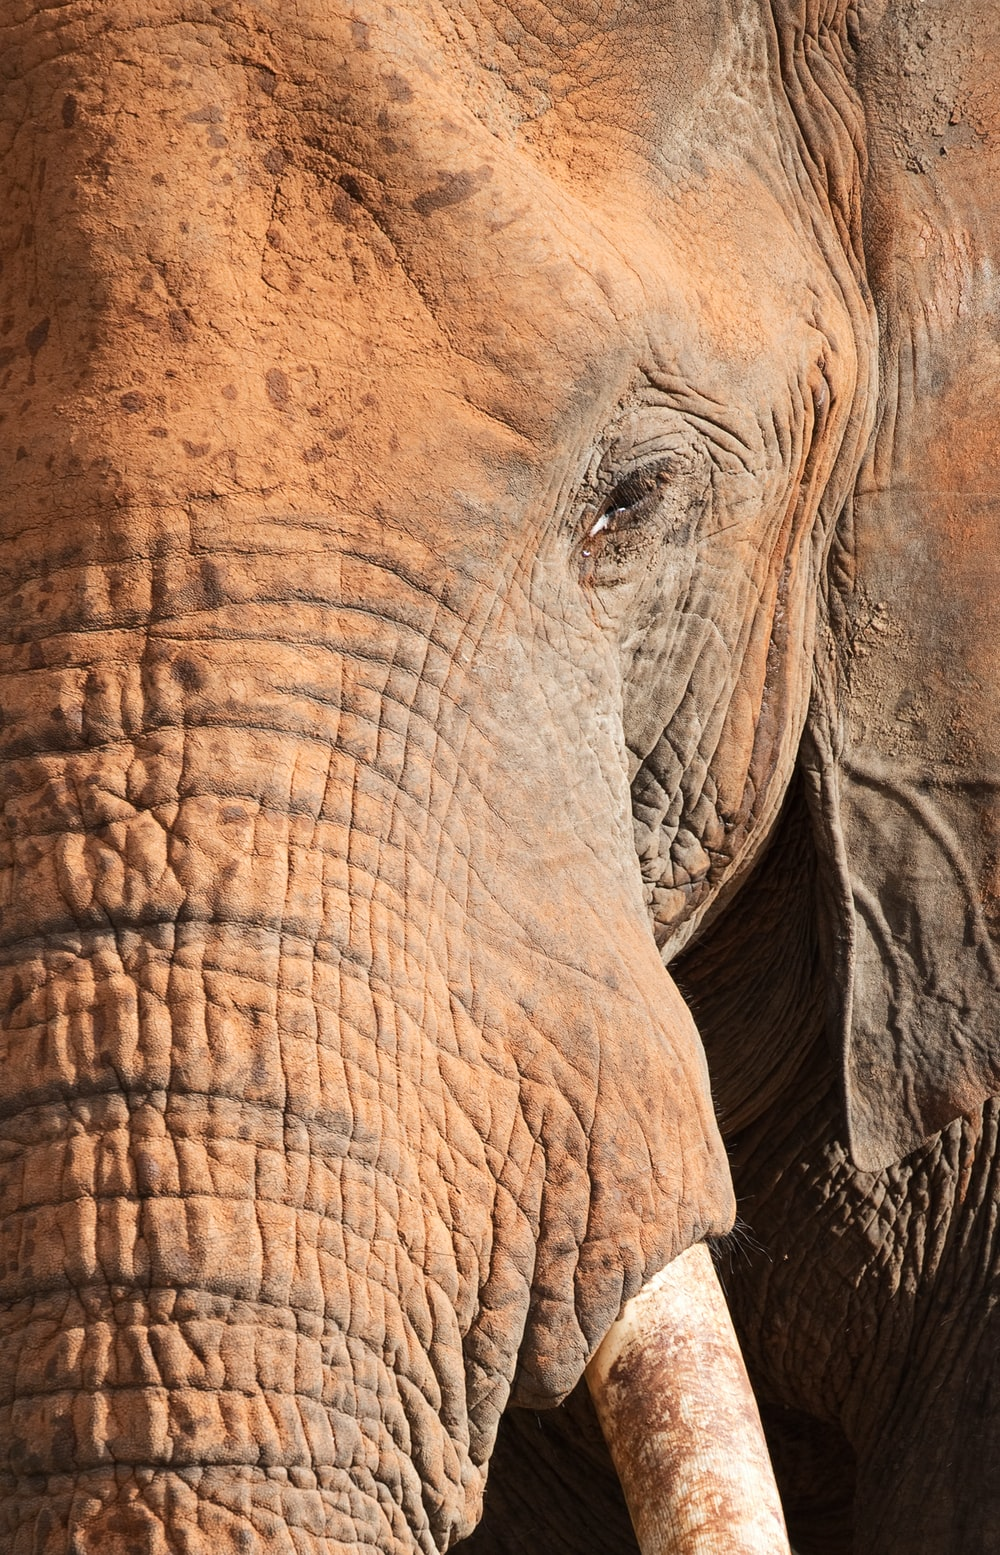 close-up photo of brown elephant